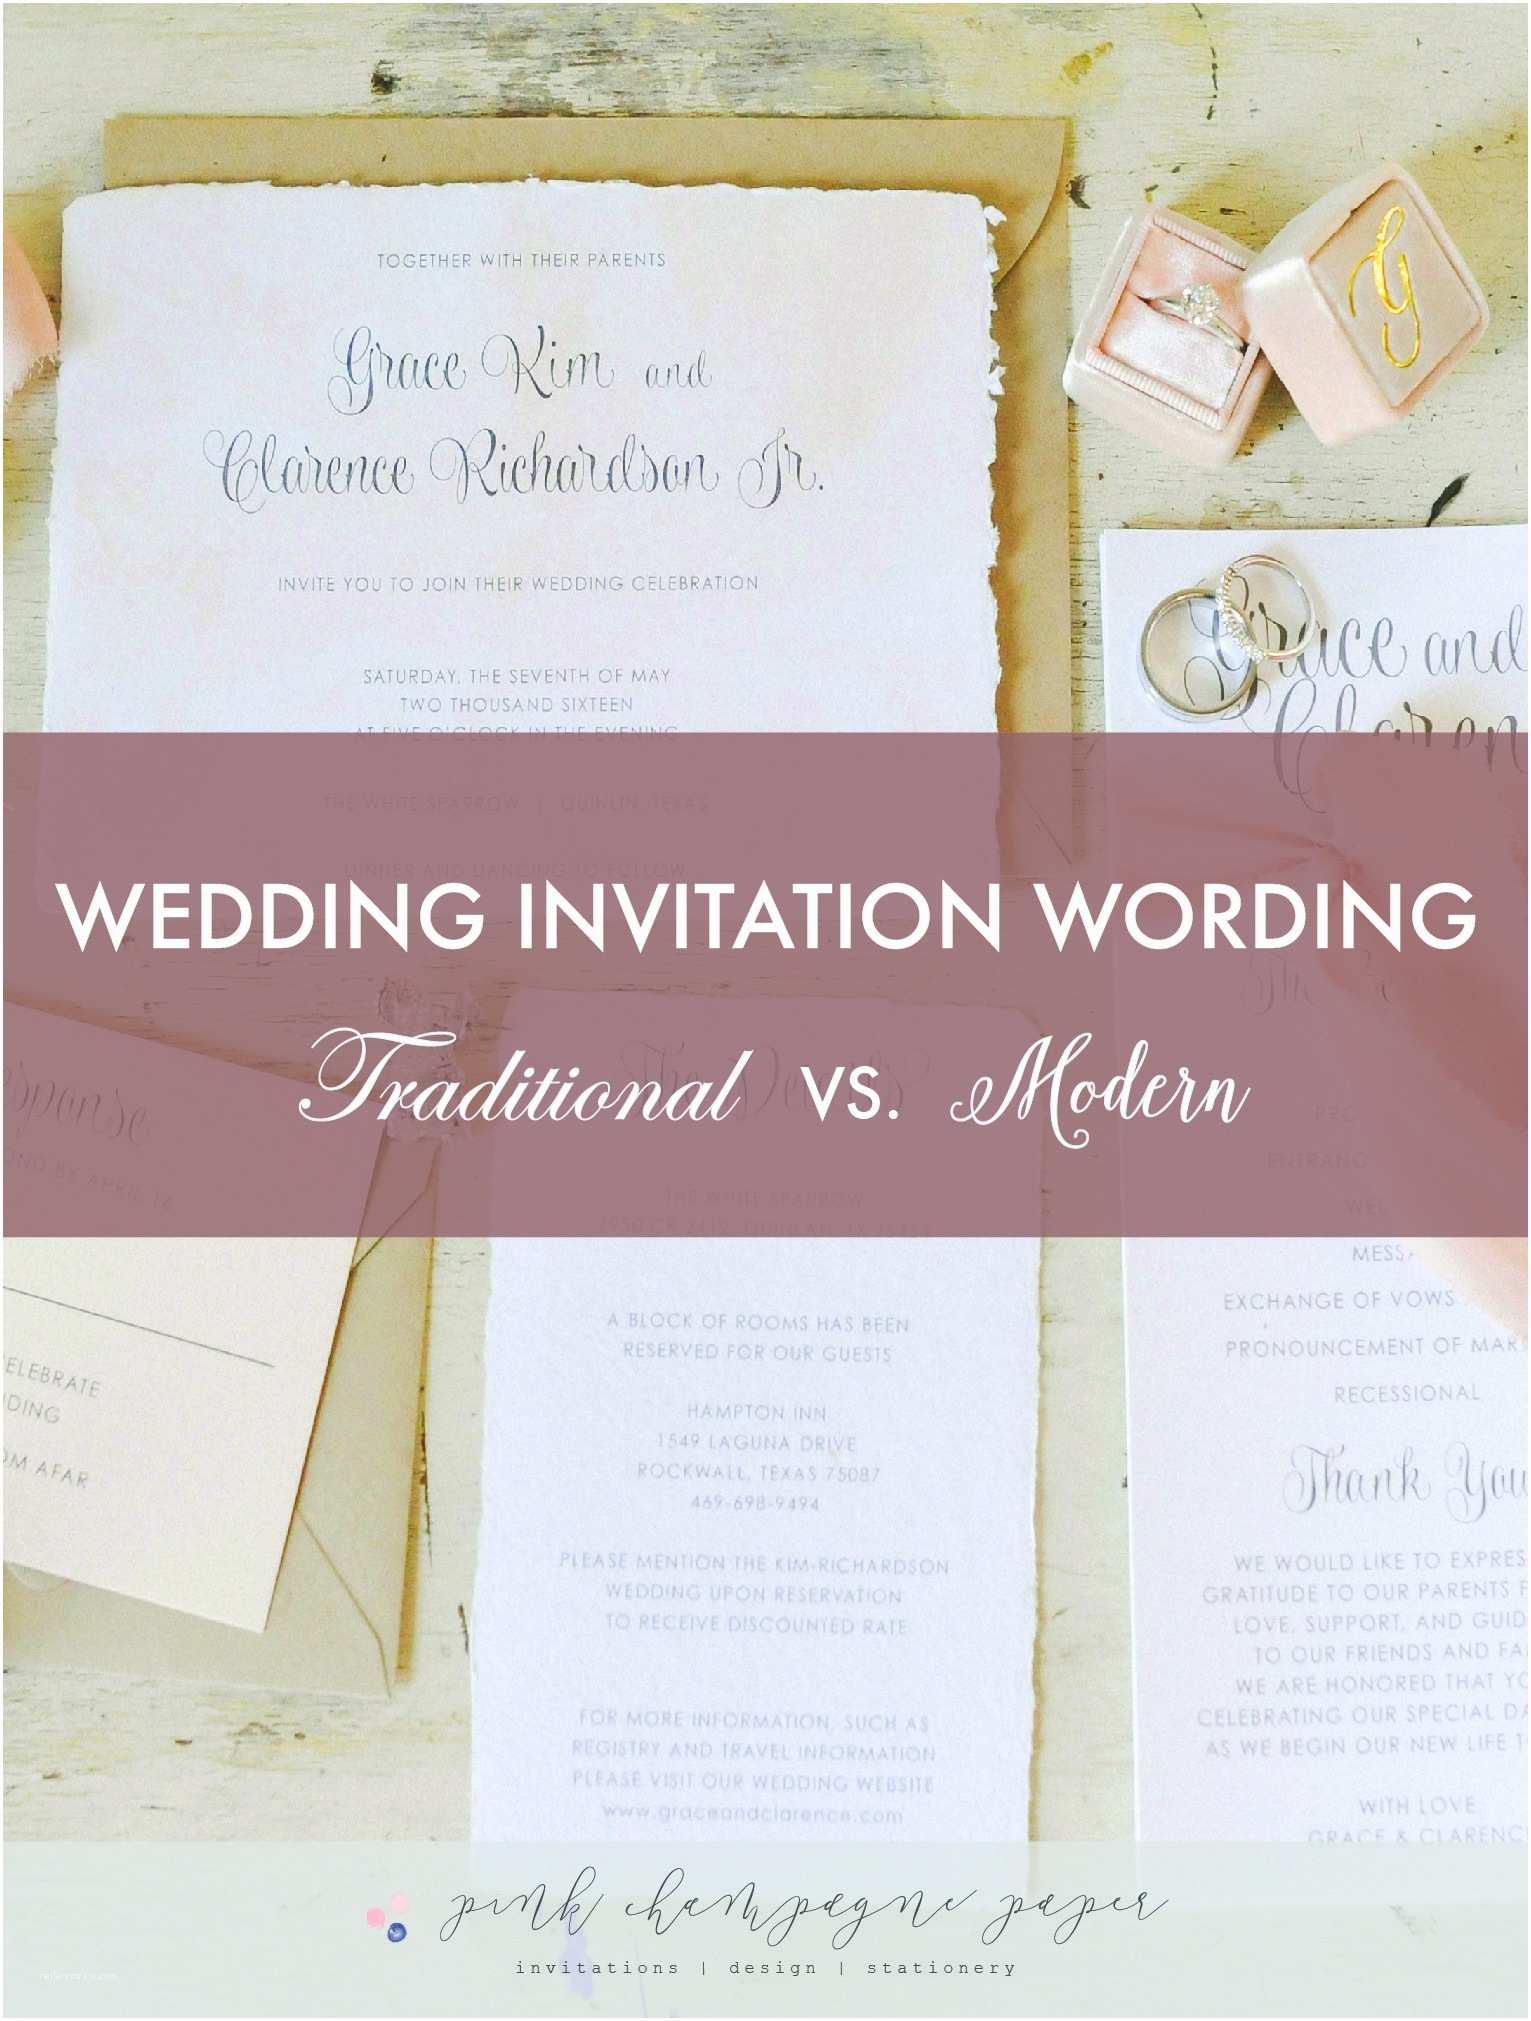 Wedding Invitation Advice Advice Tips Etiquette Archives